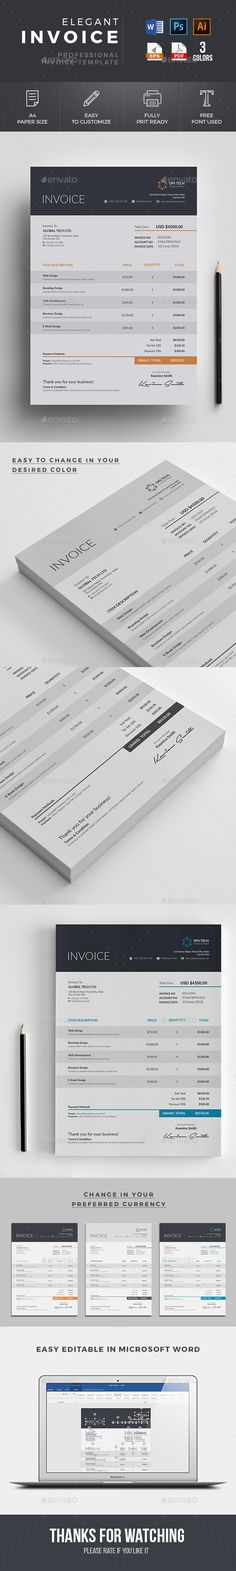 Buy Invoice by Classicdesignp on GraphicRiver. Invoice Template Use this Clean Invoice for personal, corporate or company billing purpose. This Simple Invoice will . Invoice Design, Letterhead Design, Invoice Template, Templates, Web Design, Flyer Design, Layout Design, Logo Design, Graphic Design